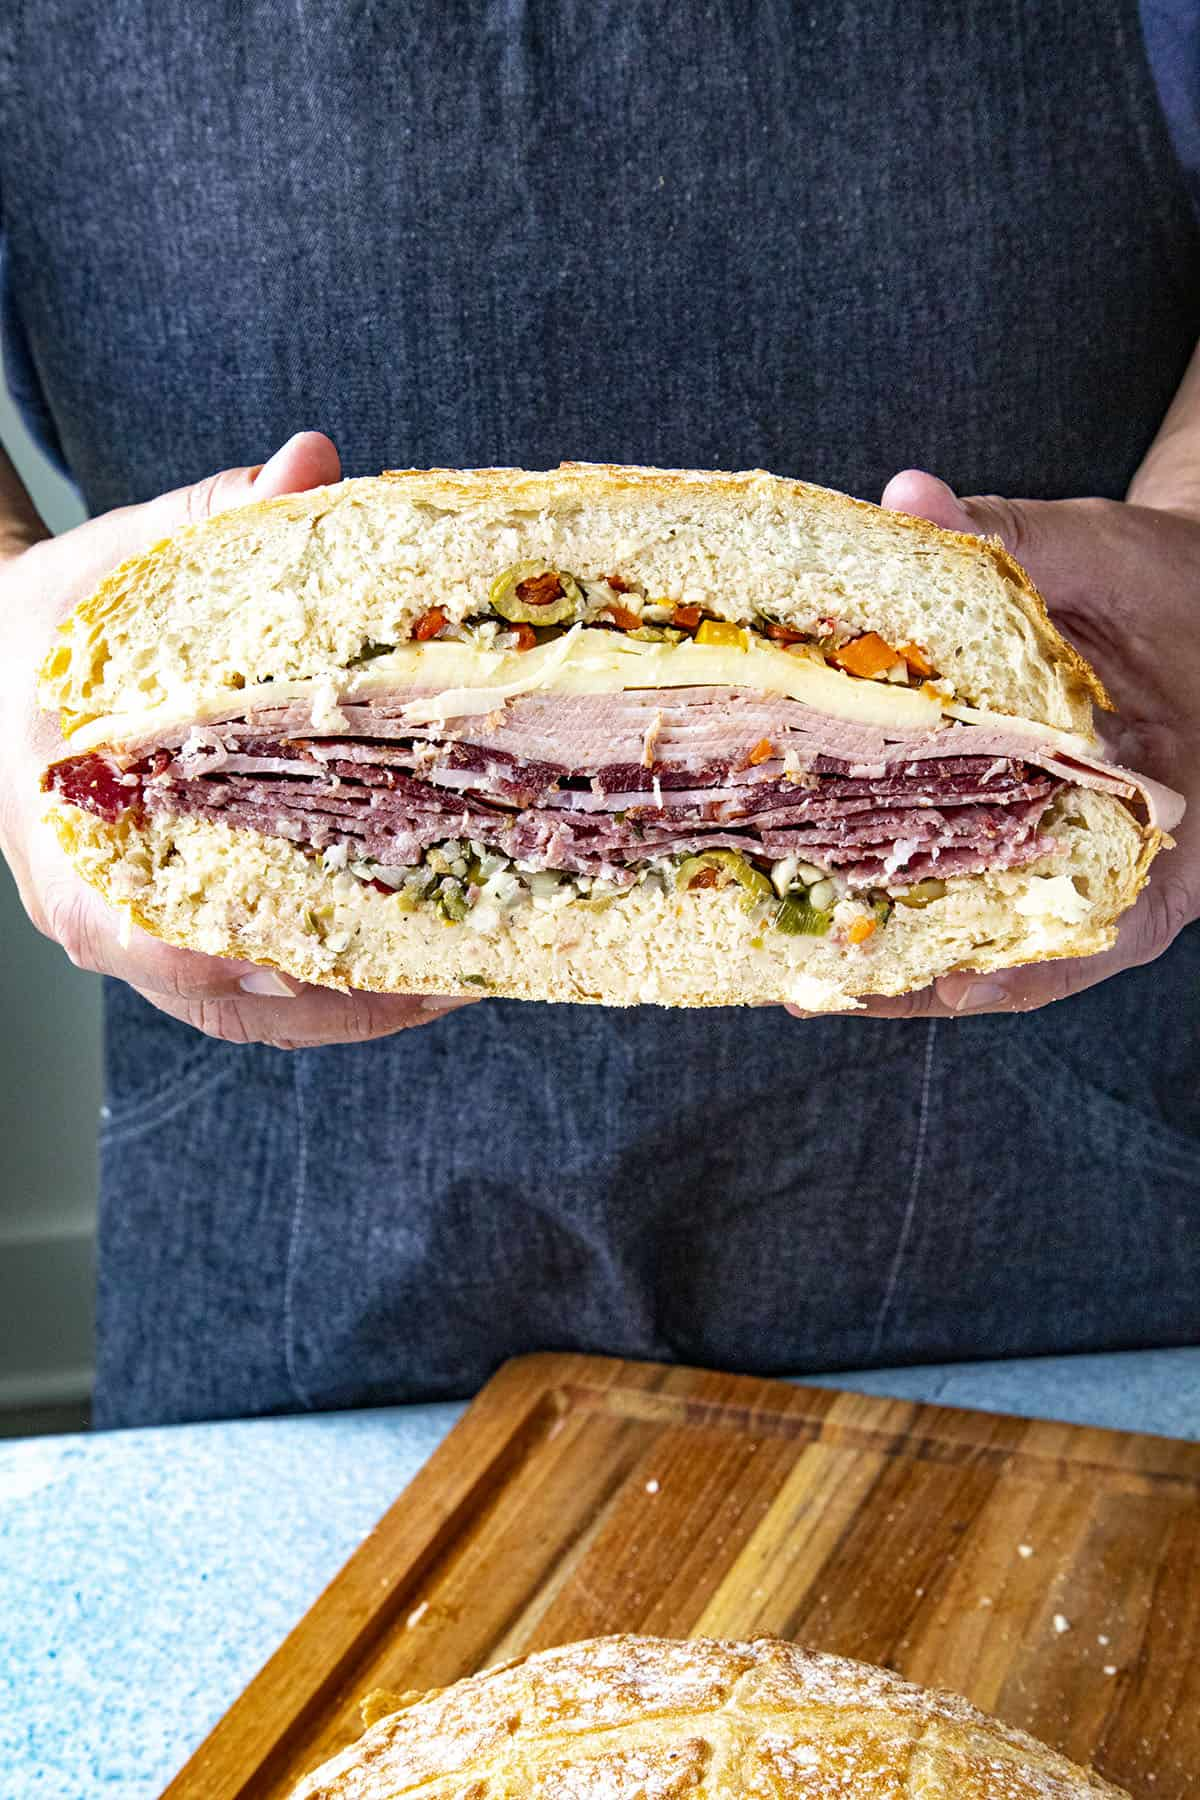 A thick and meaty Muffaletta sandwich sliced in half